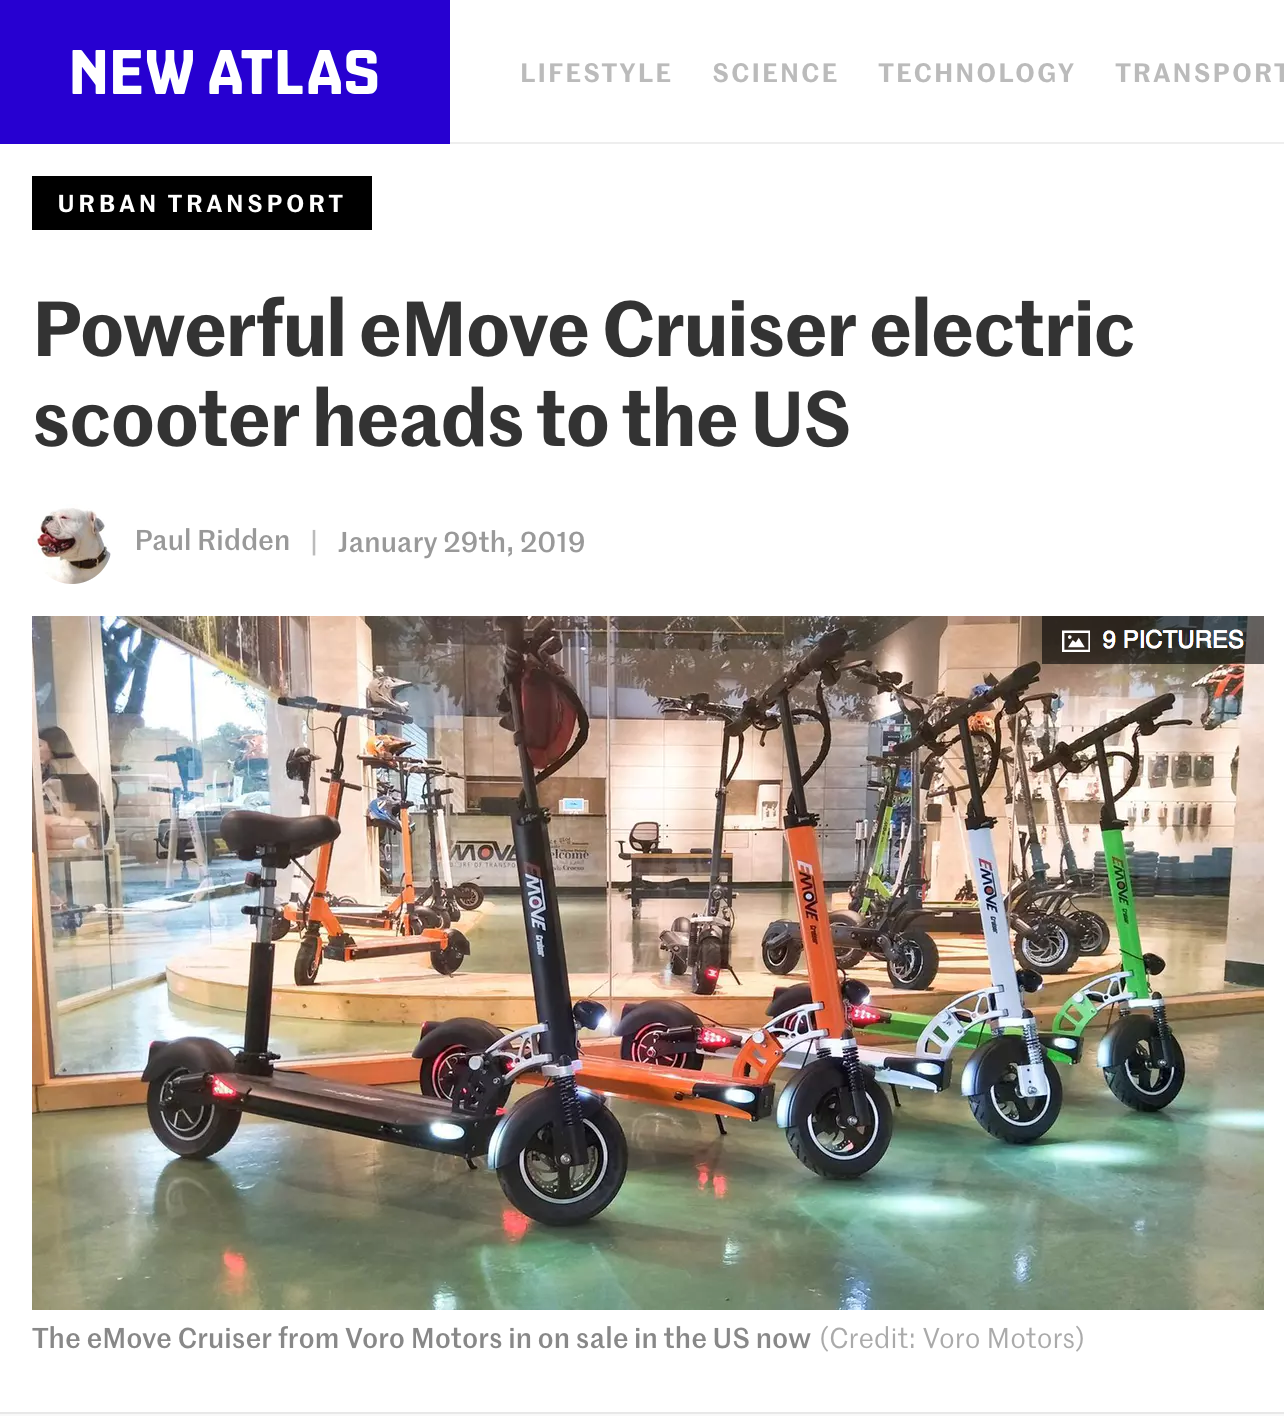 EMOVE Cruiser Electric Scooter New Atlas